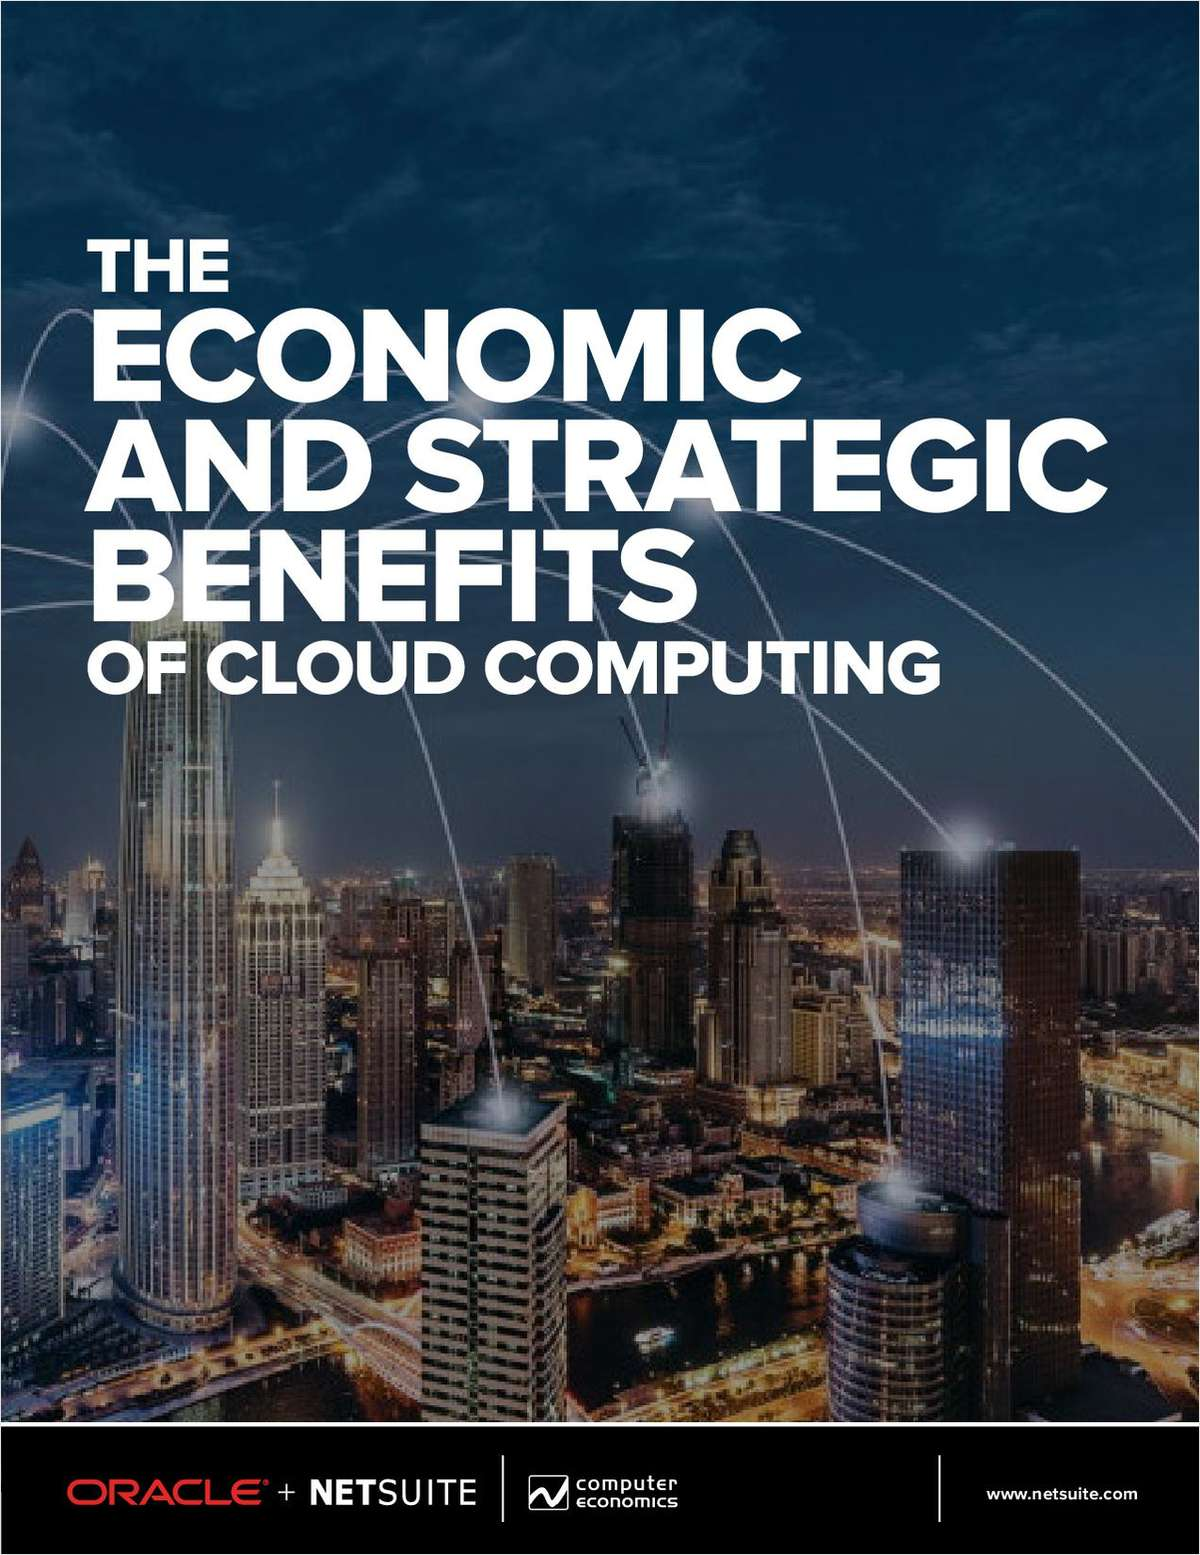 The Economic and Strategic Benefits of Cloud Computing